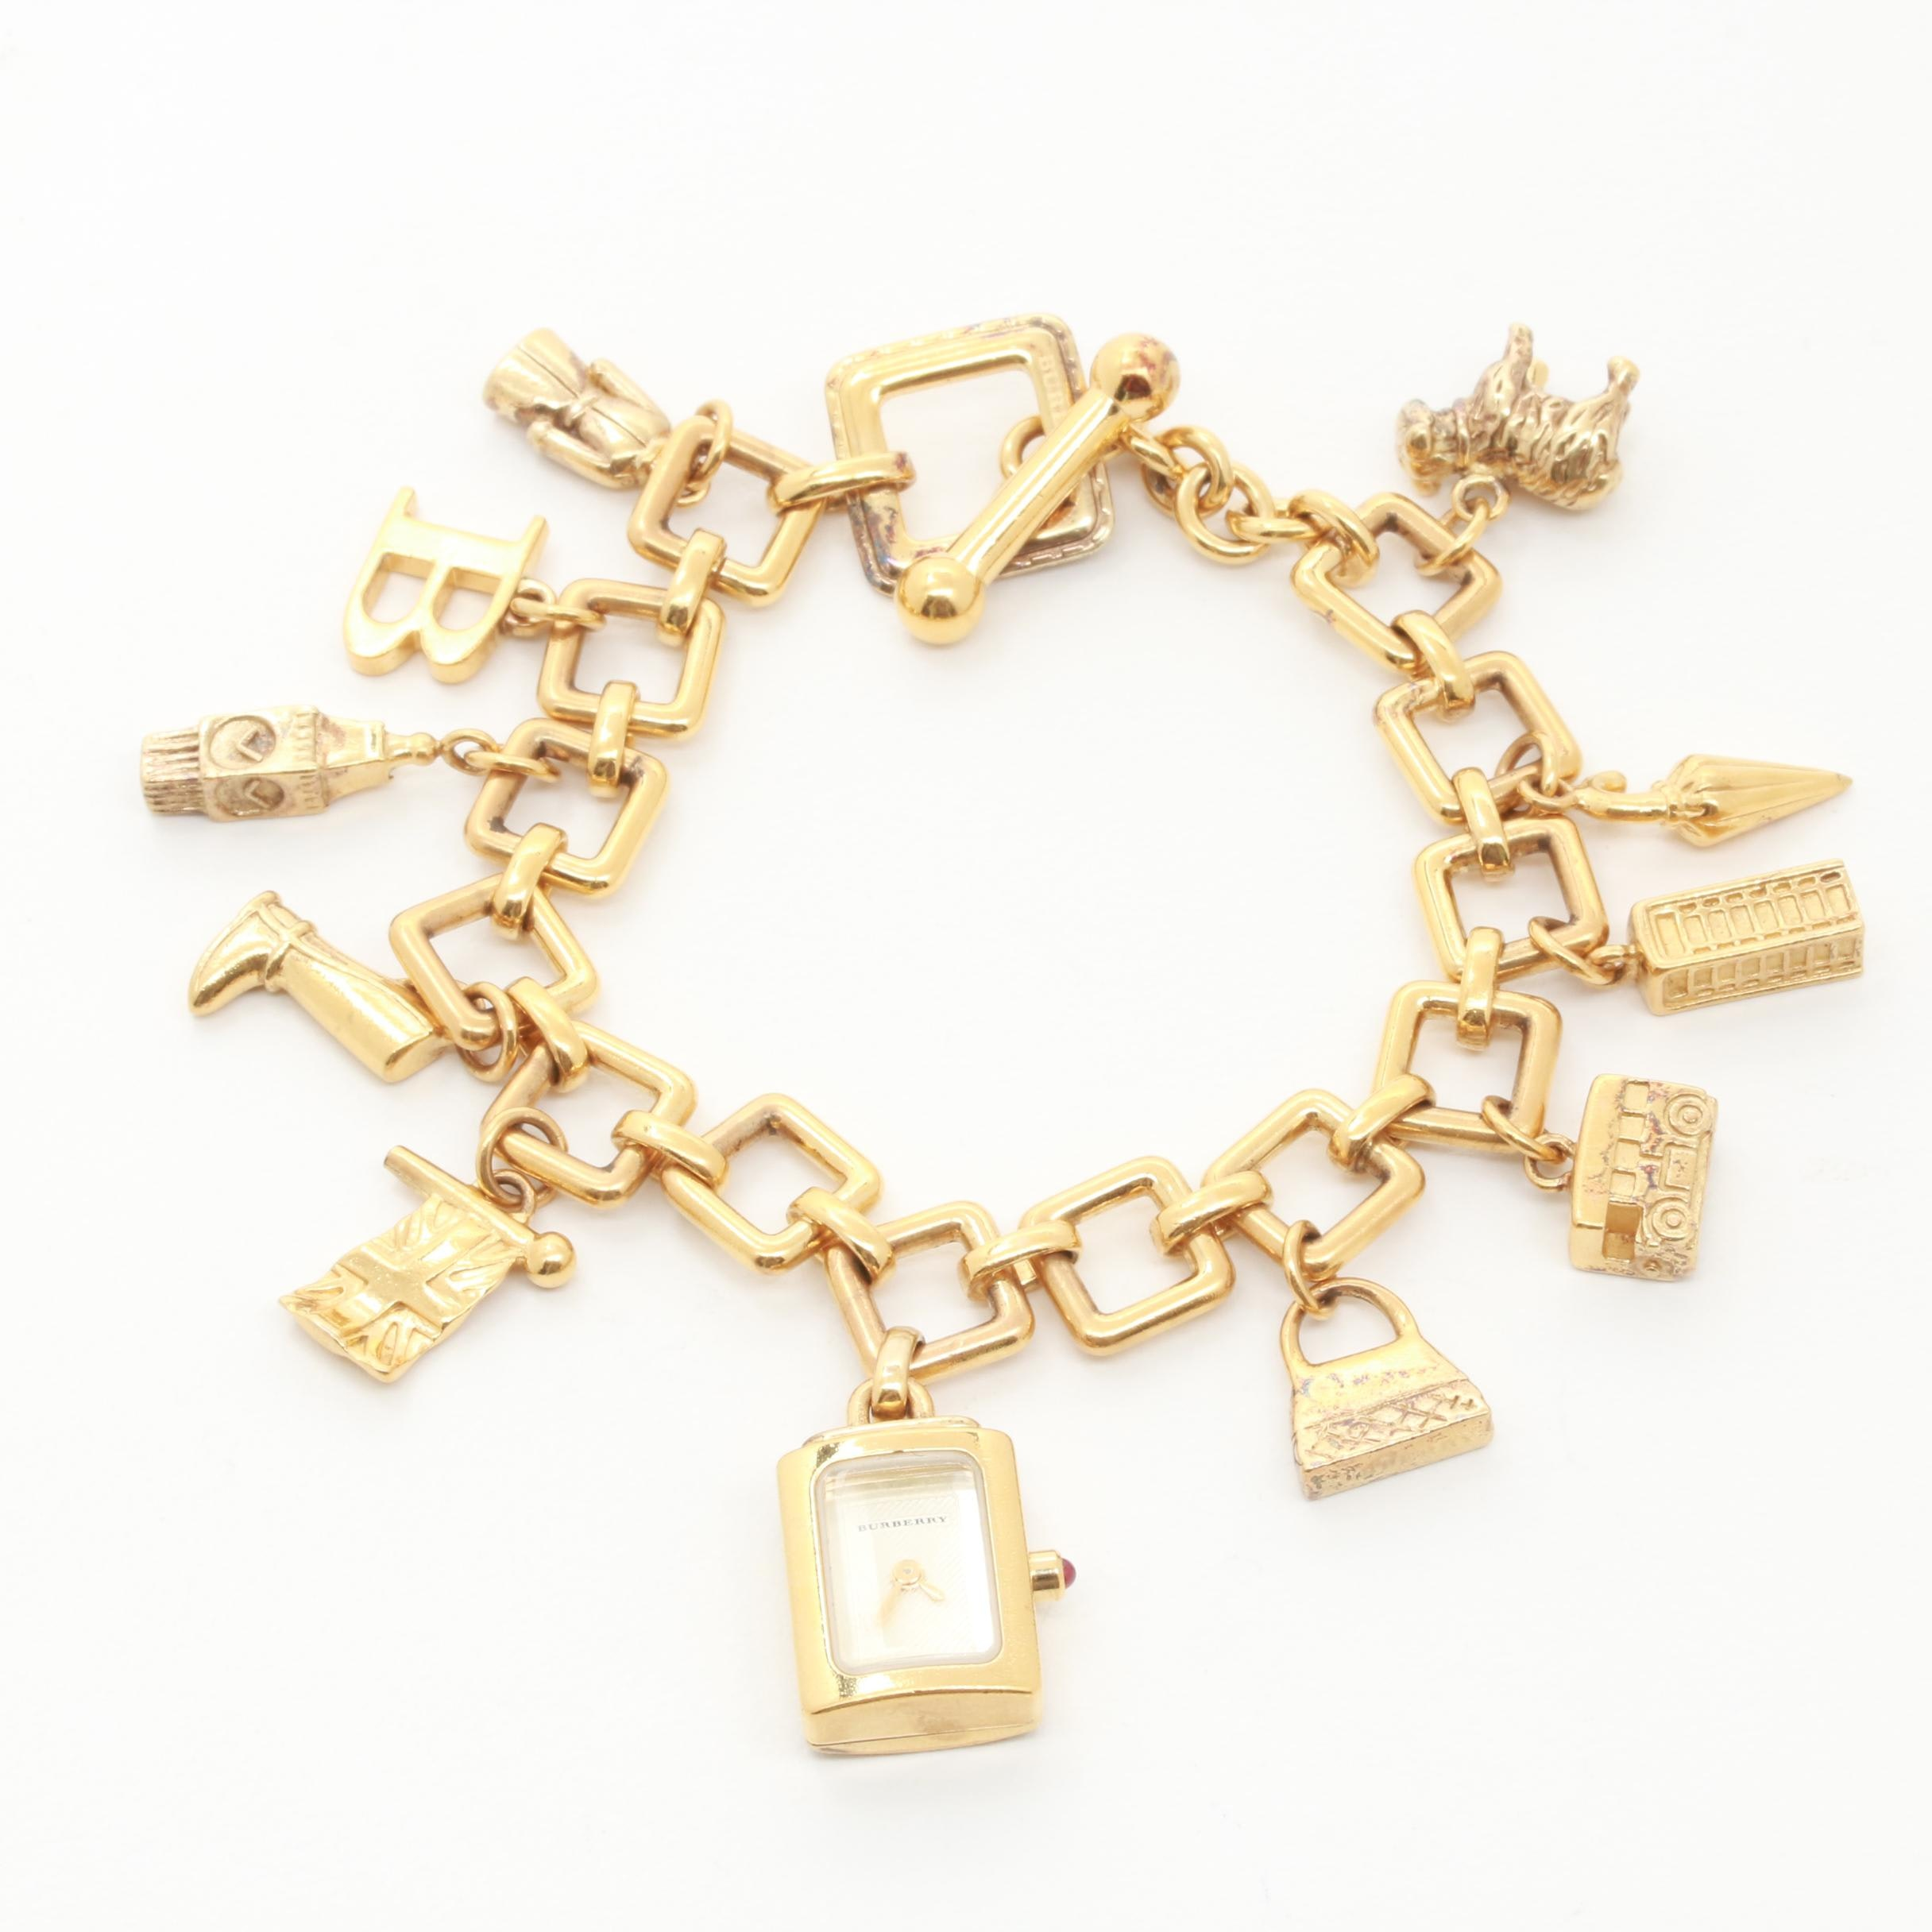 Burberry Gold Wash on Sterling Silver Charm Bracelet